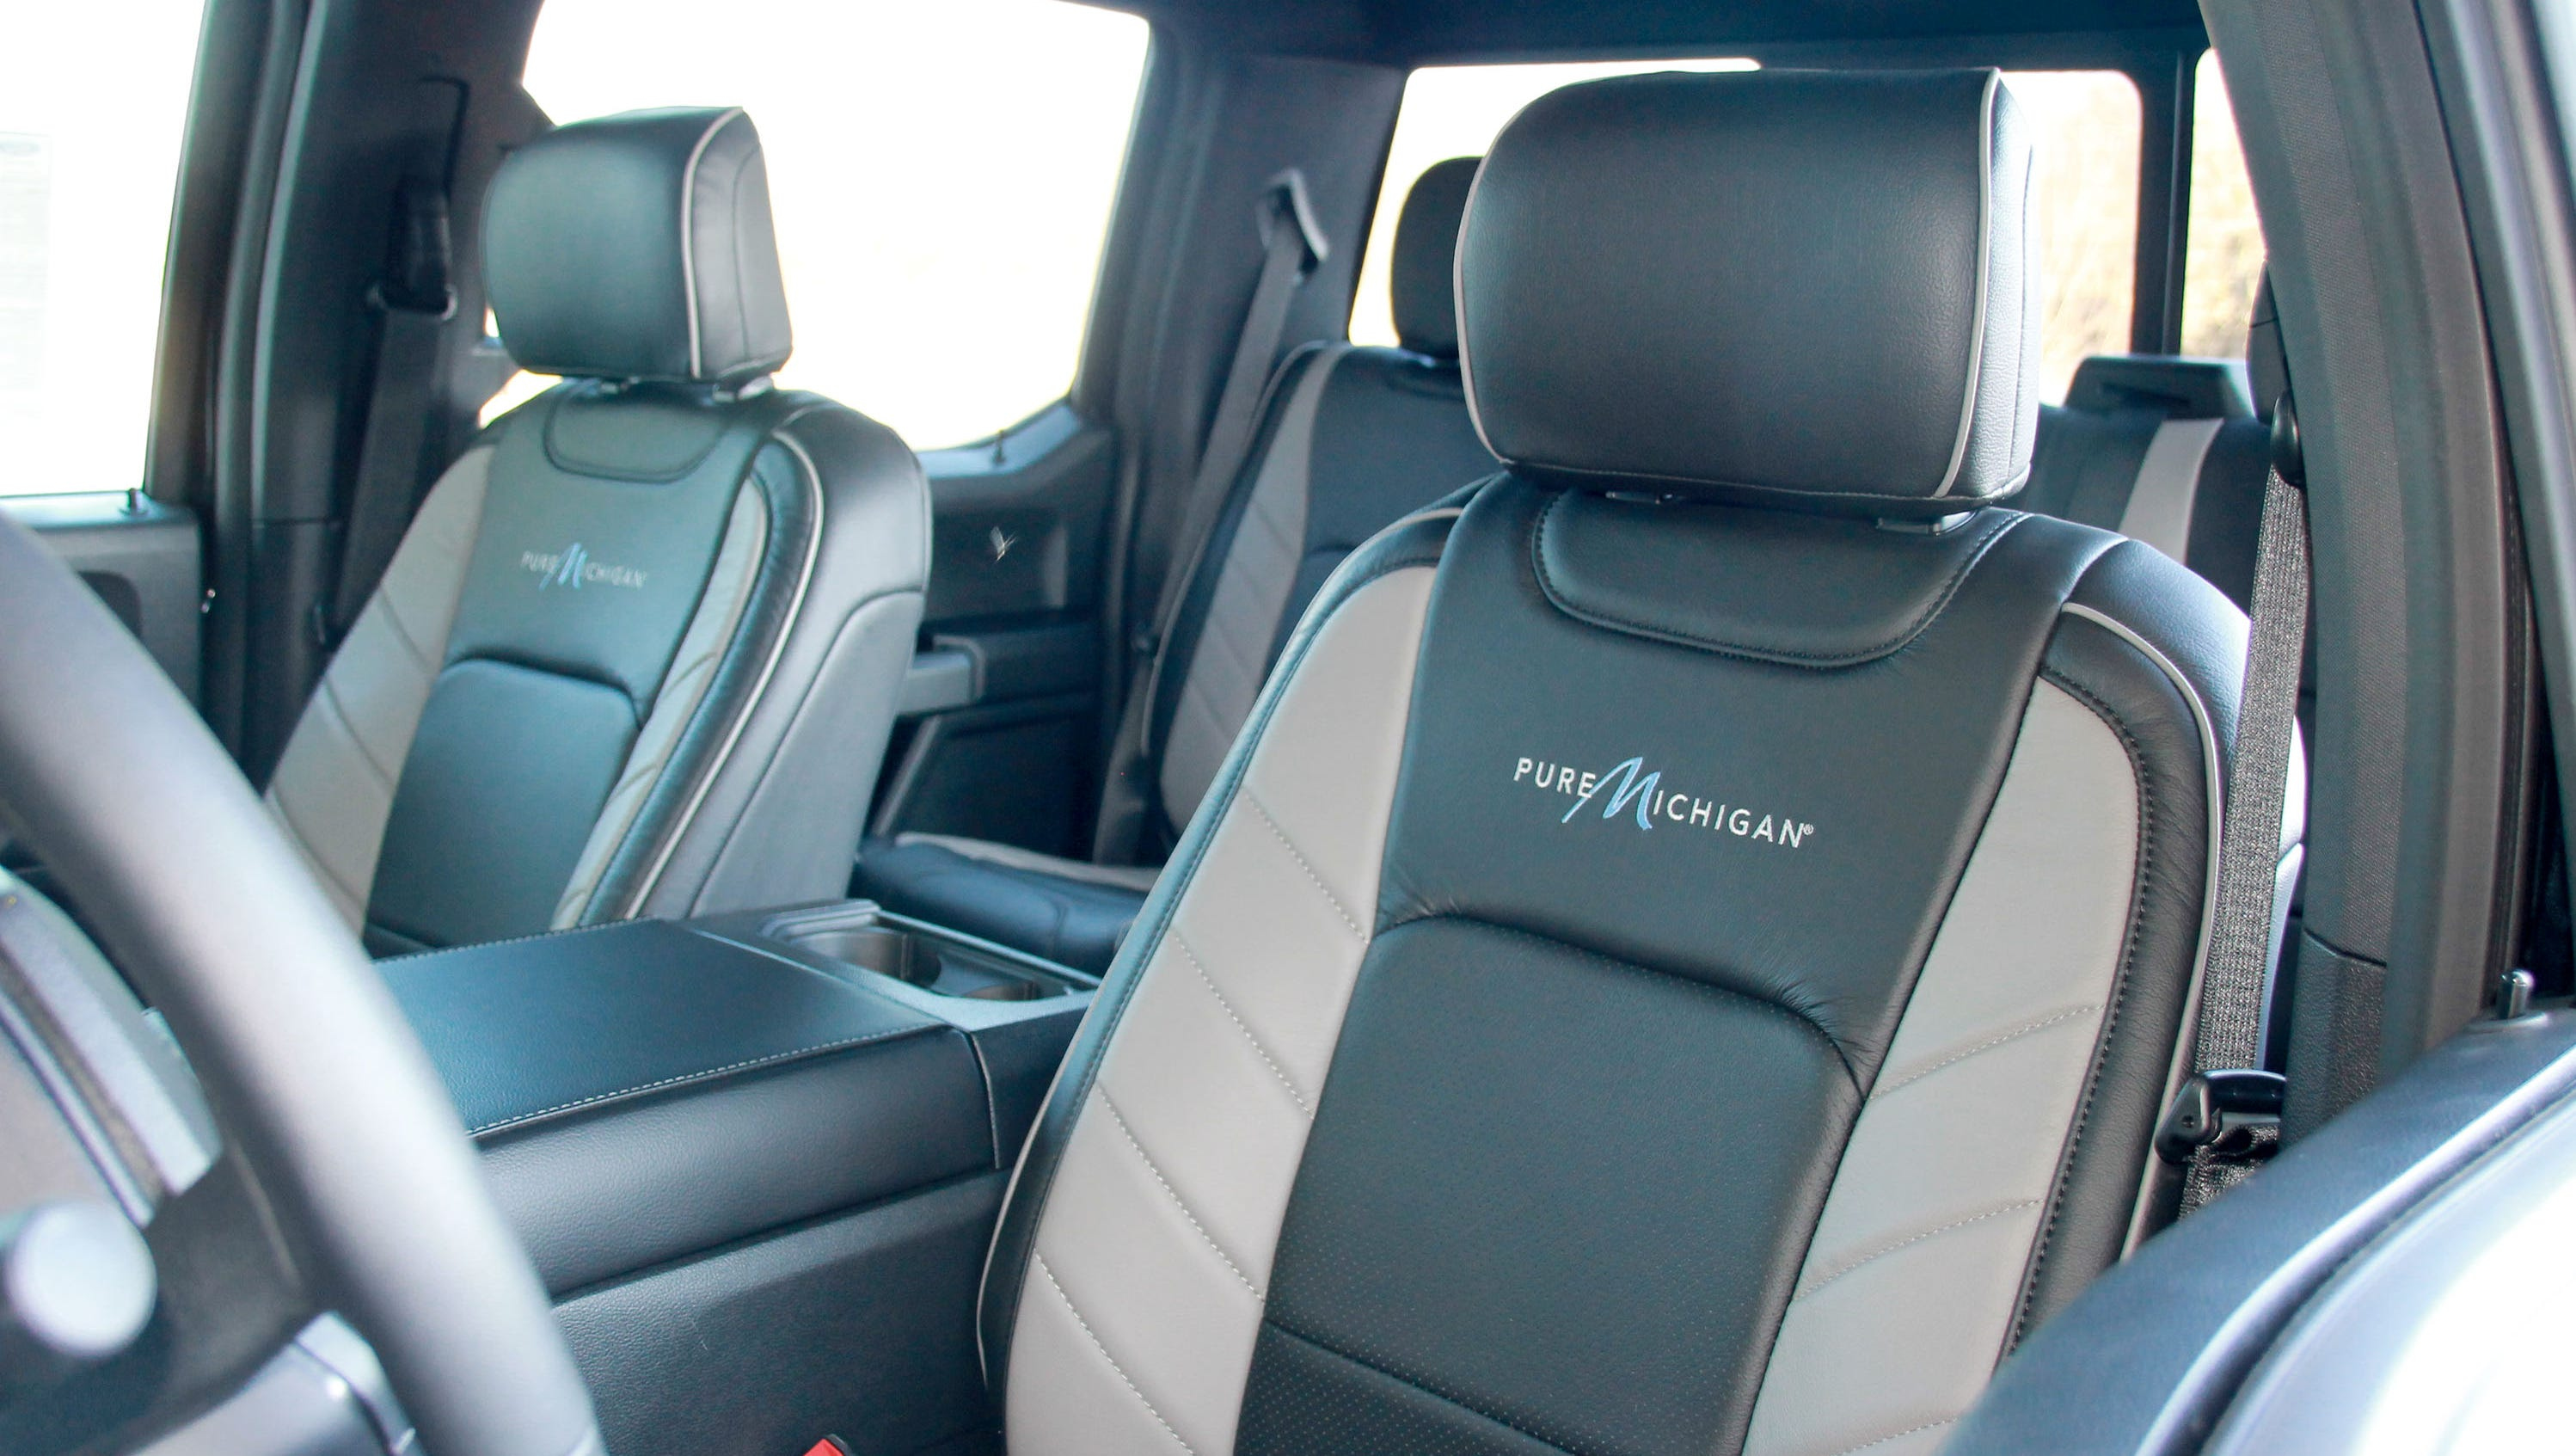 Ford F 150 Special Edition Customization Is Pure Michigan